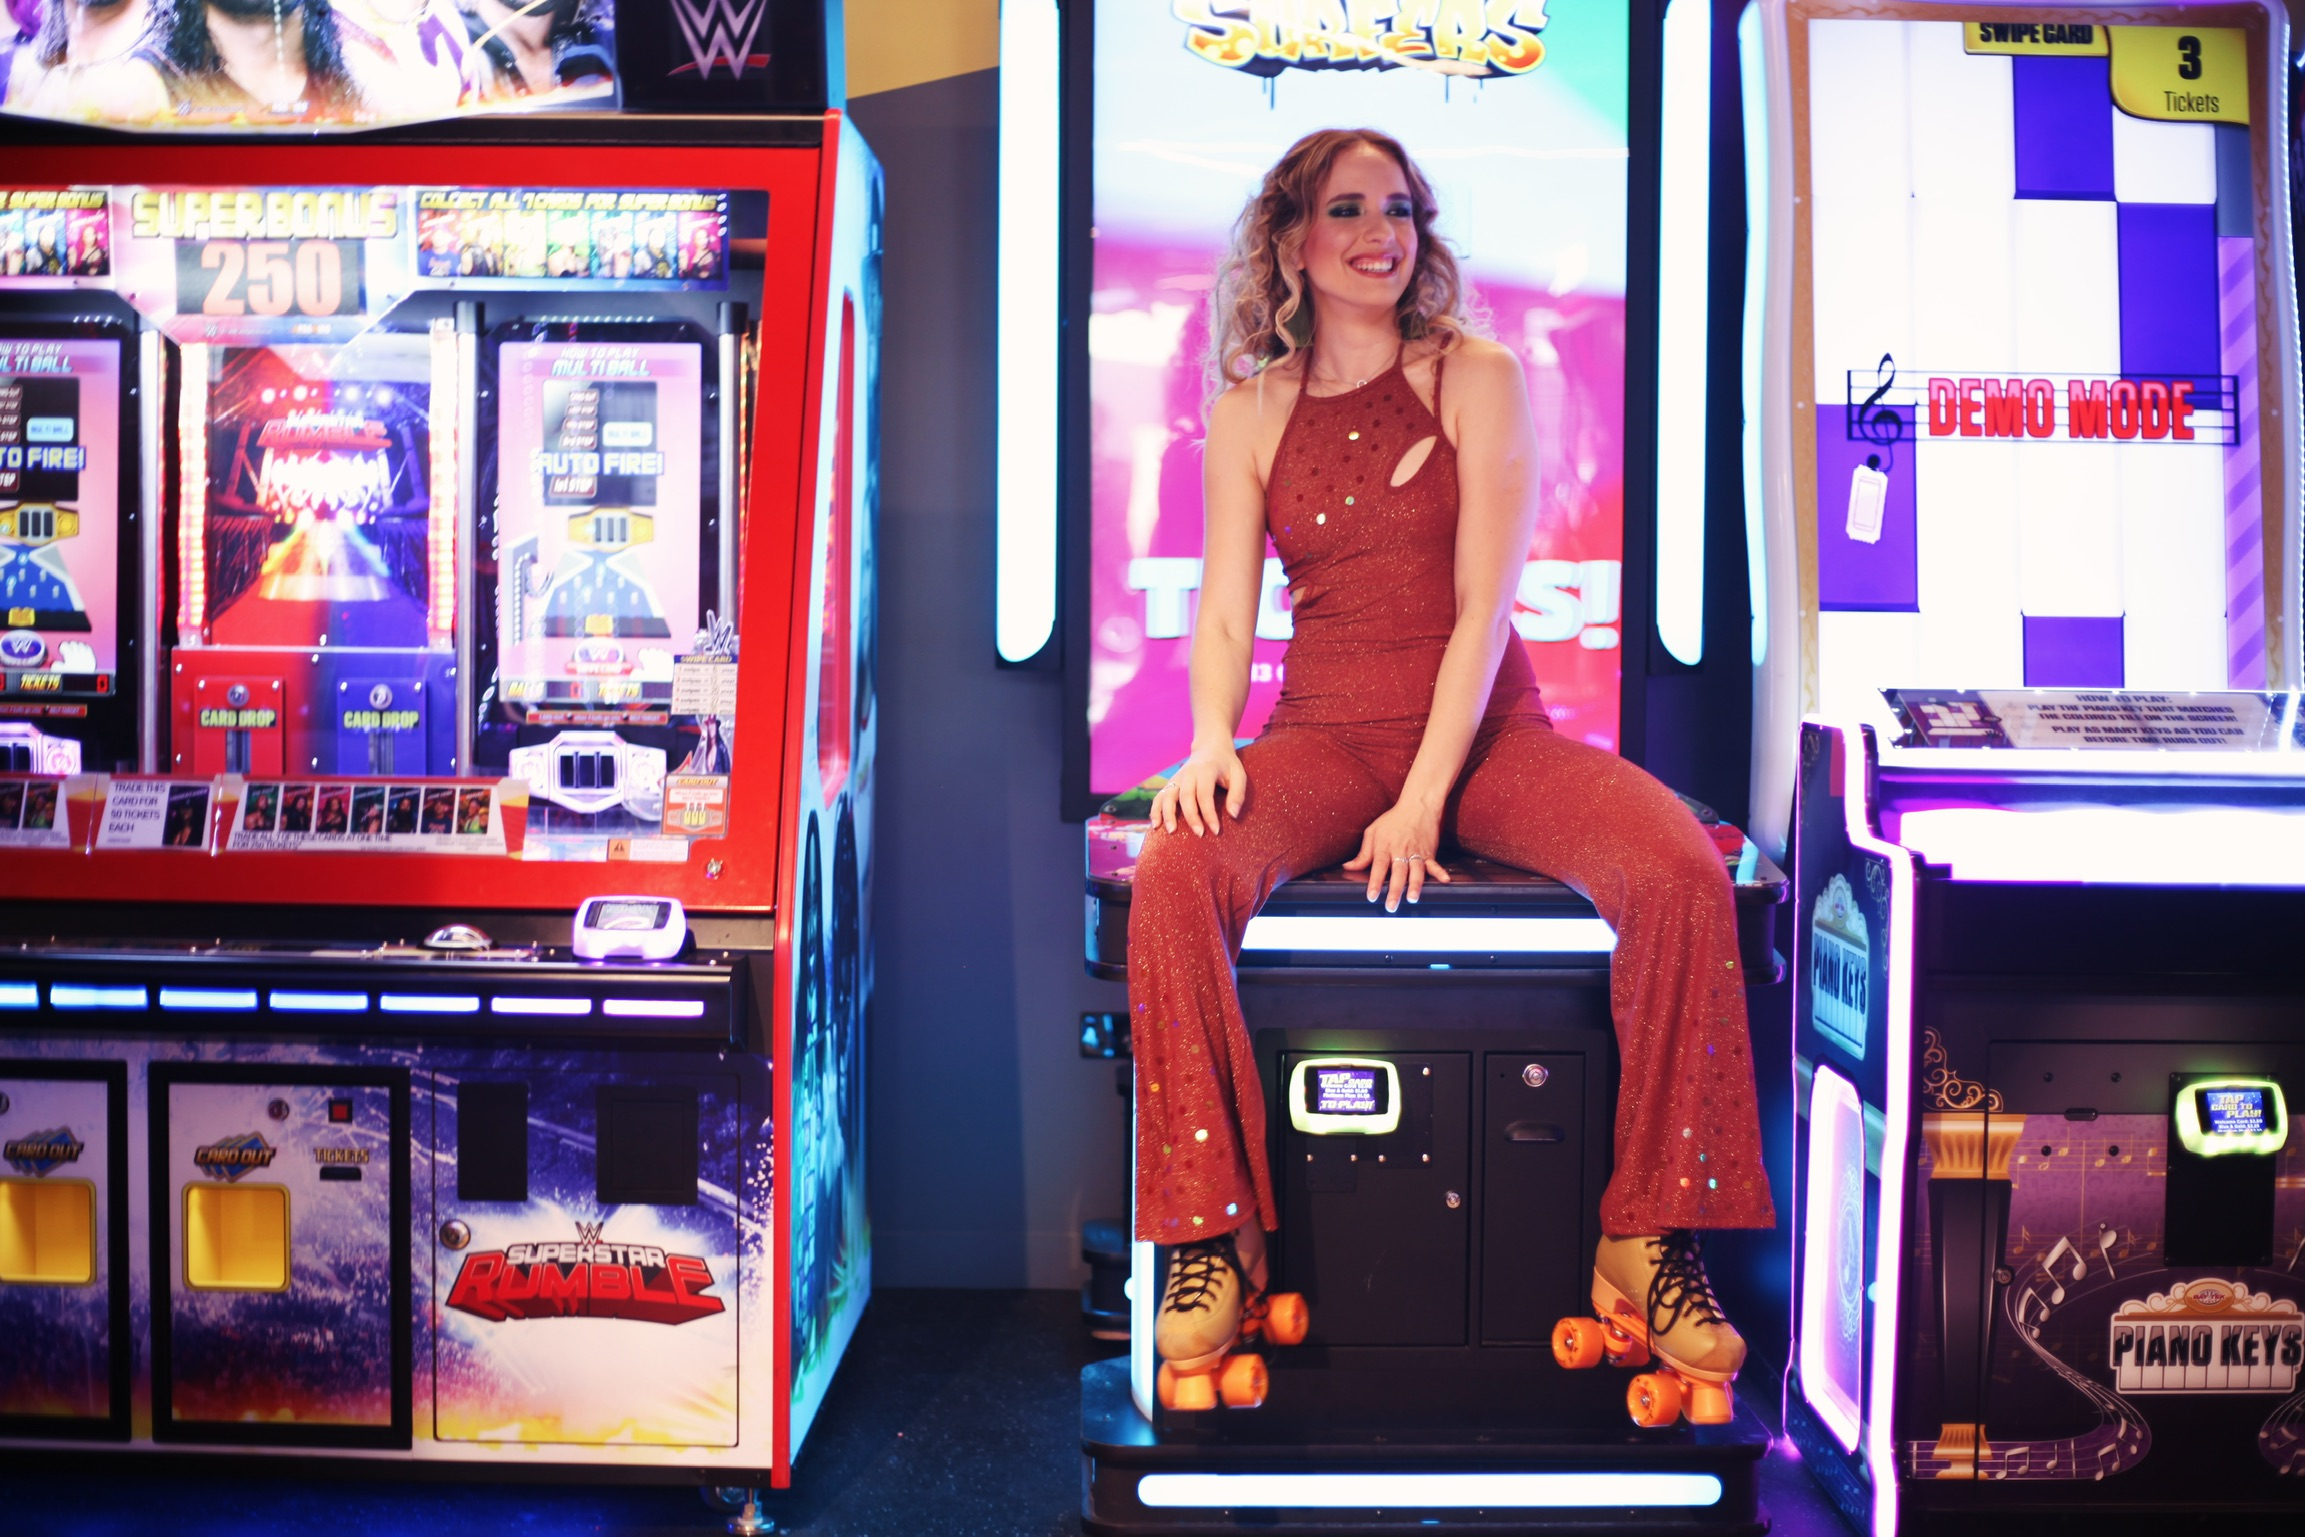 girl in roller skates sitting on arcade game smiling into the distance